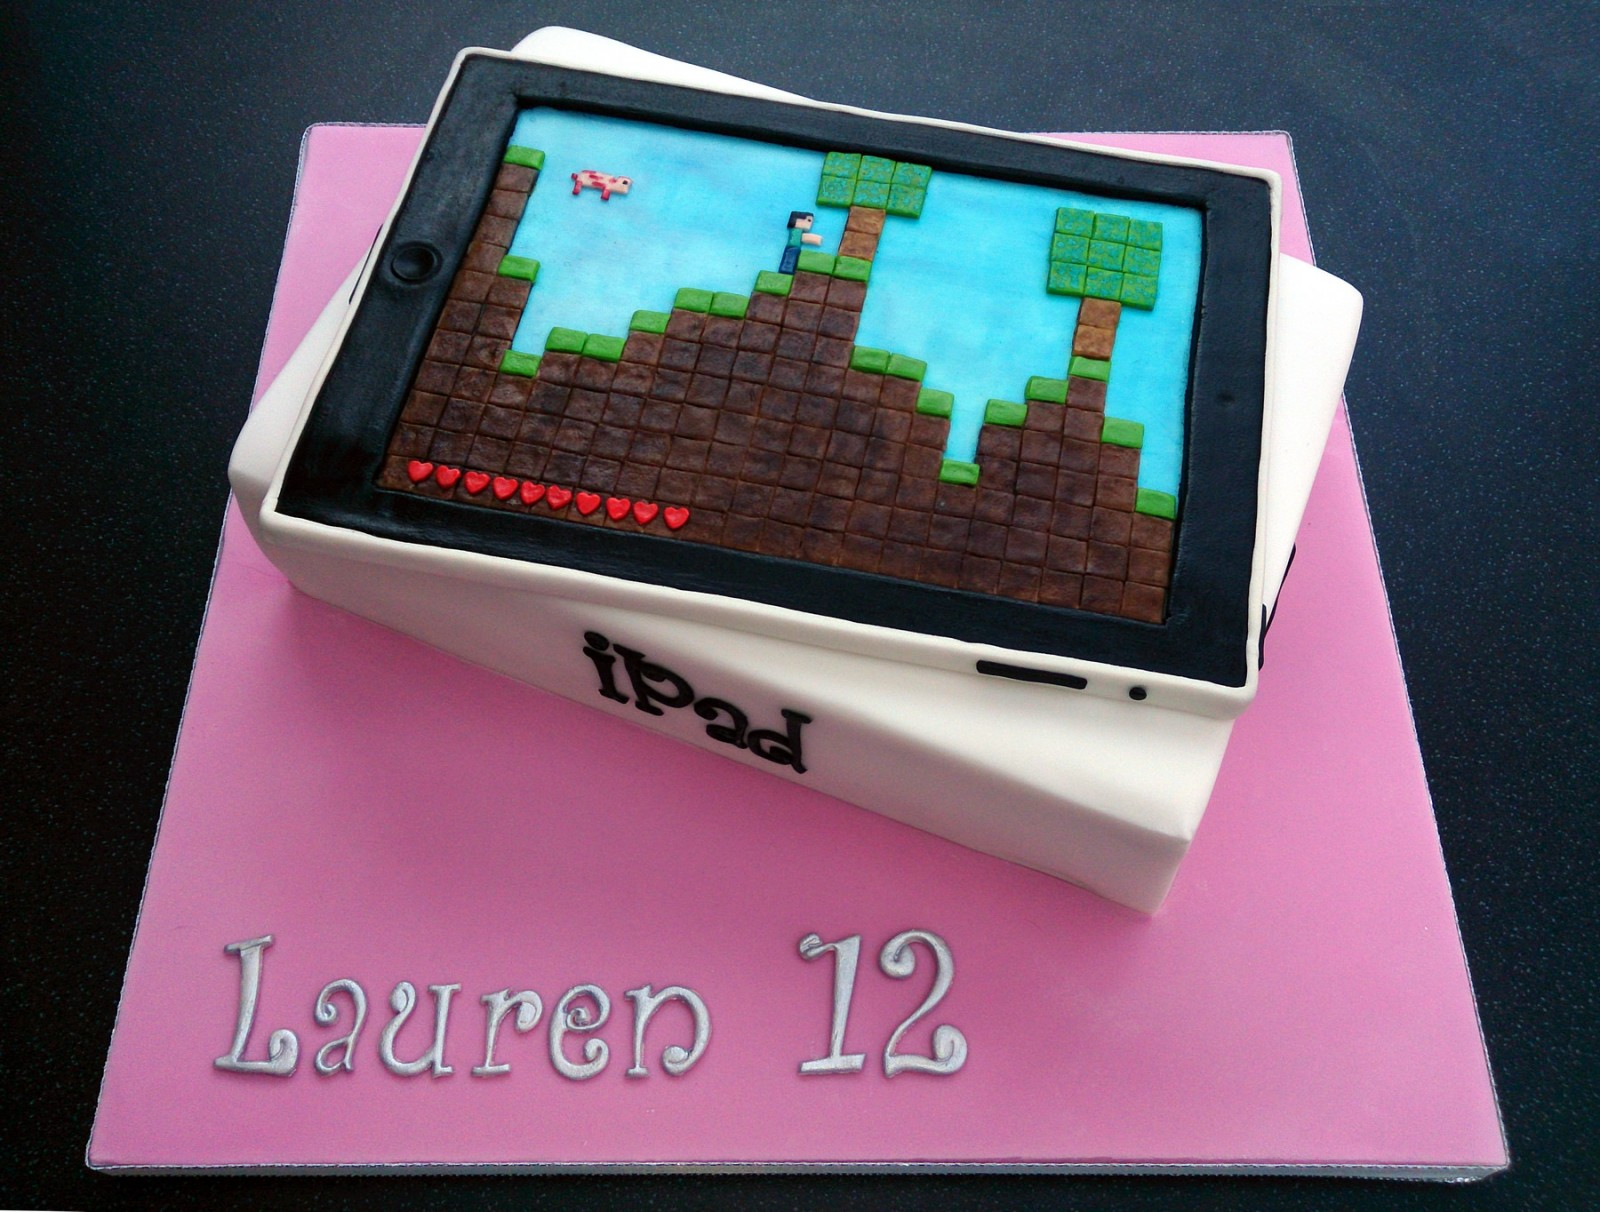 Stupendous Ipad Novelty Birthday Cake With Minecraft Game Susies Cakes Funny Birthday Cards Online Alyptdamsfinfo